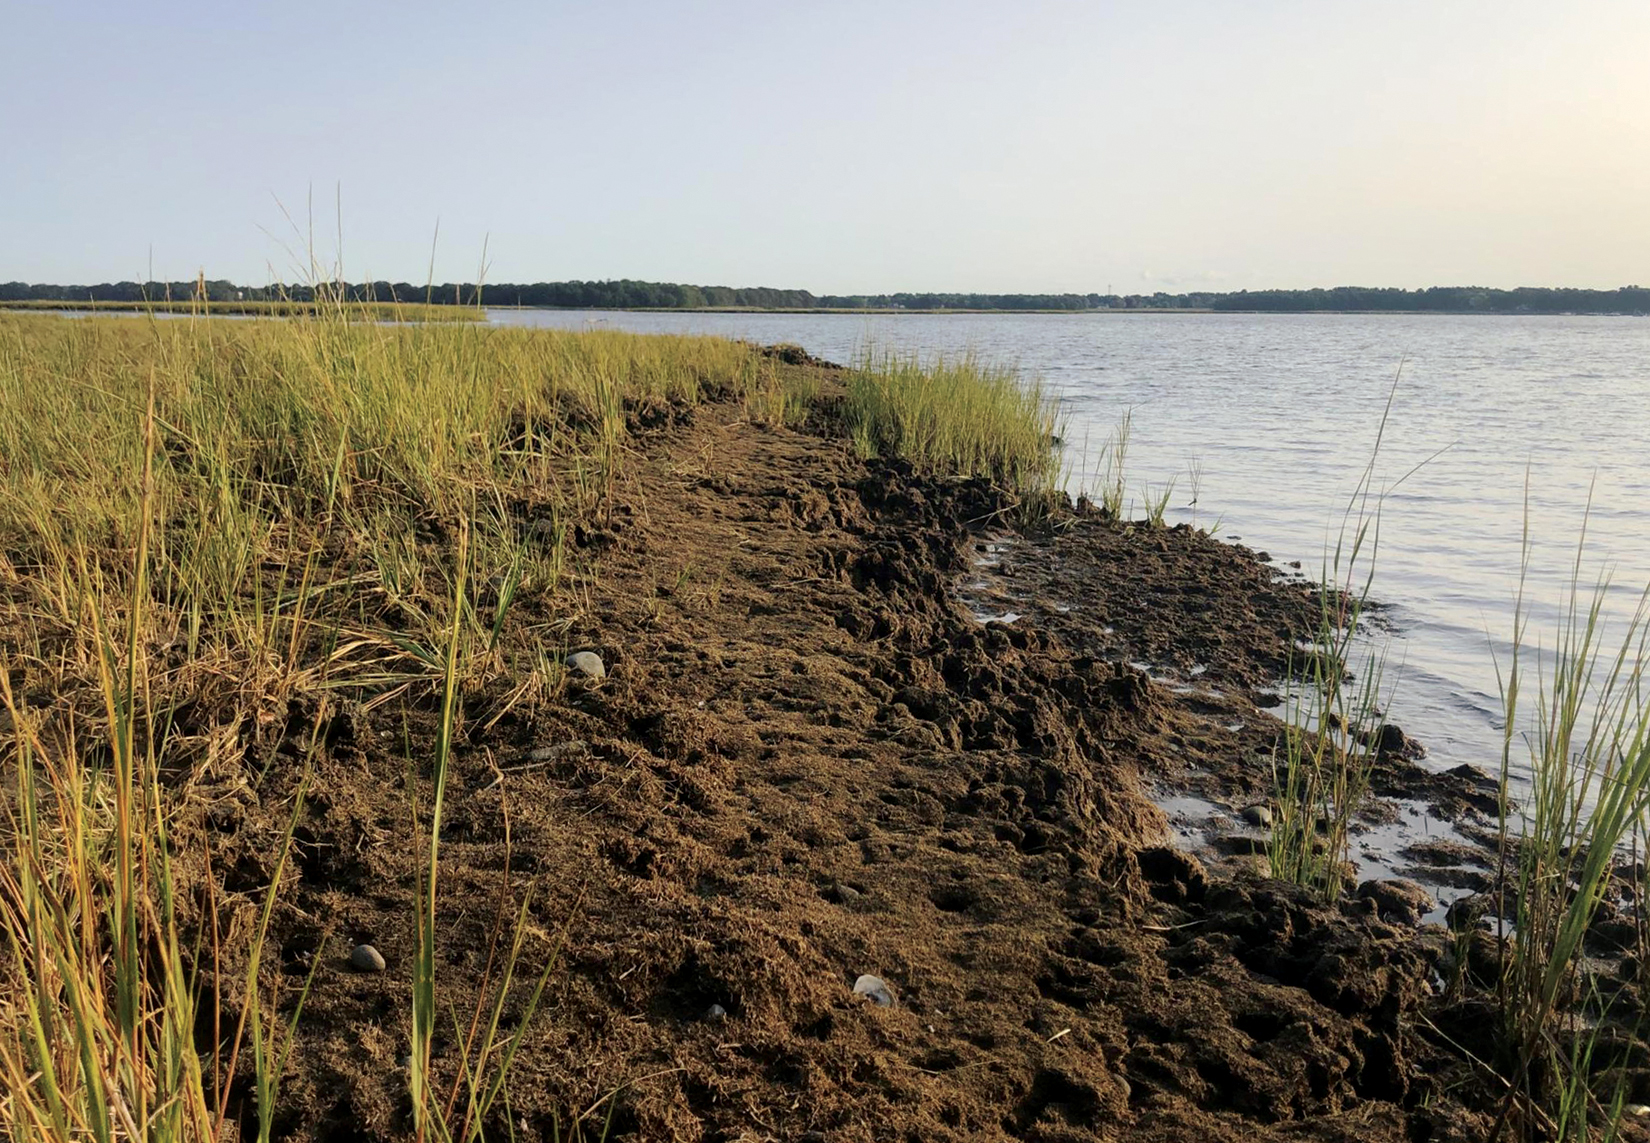 An explosion of fiddler crab burrows has accelerated salt marsh loss throughout Hundred Acre Cove where sea level rise has stressed the marsh plants.